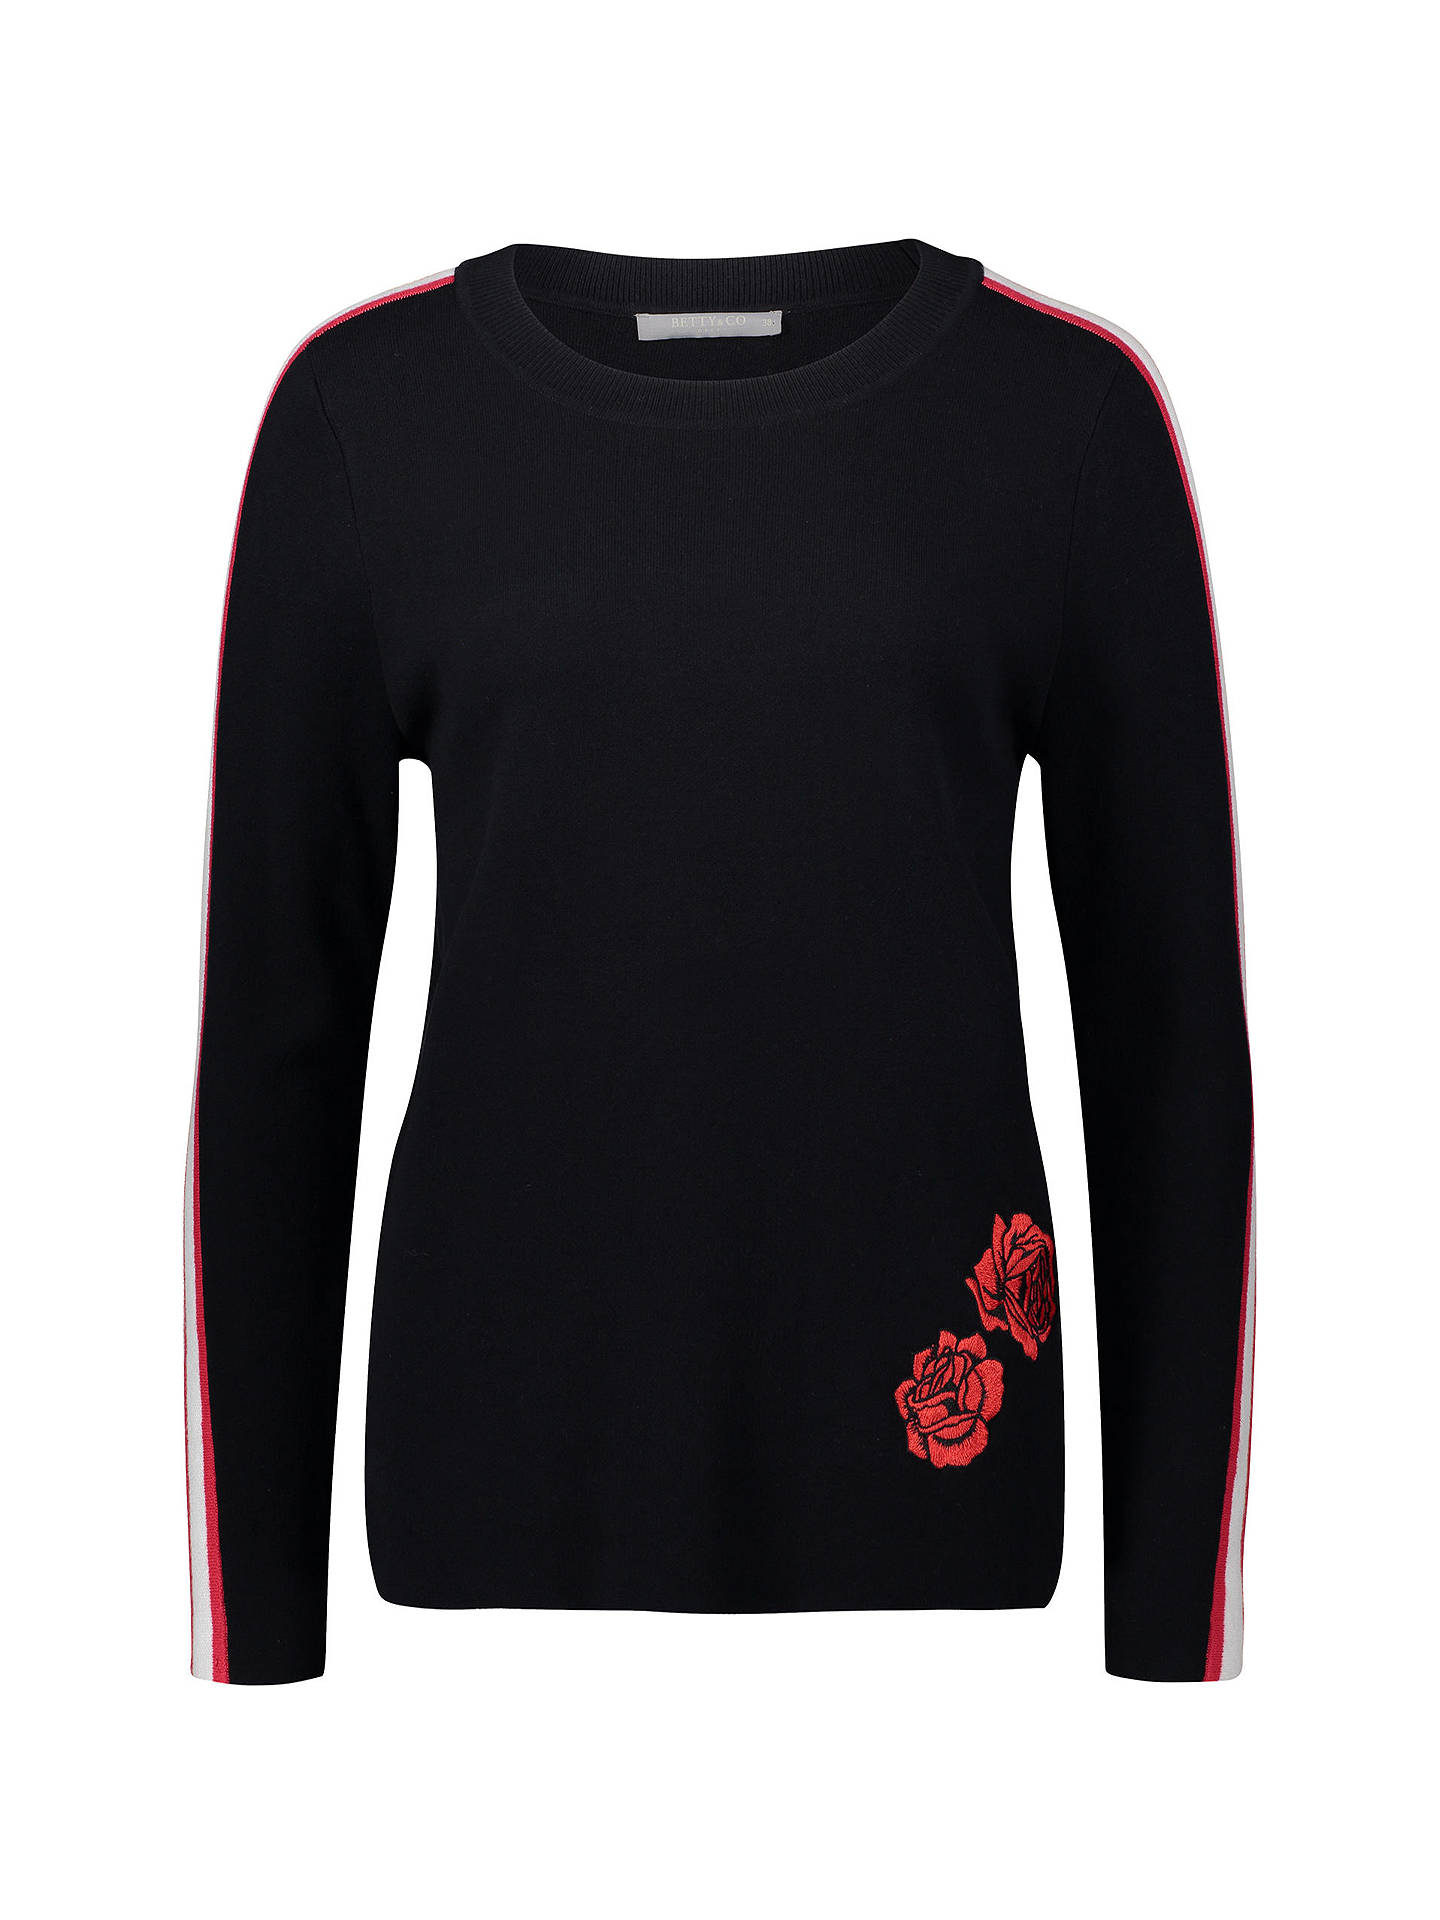 BuyBetty Barclay Embroidered Jumper, Black/Red, 10 Online at johnlewis.com